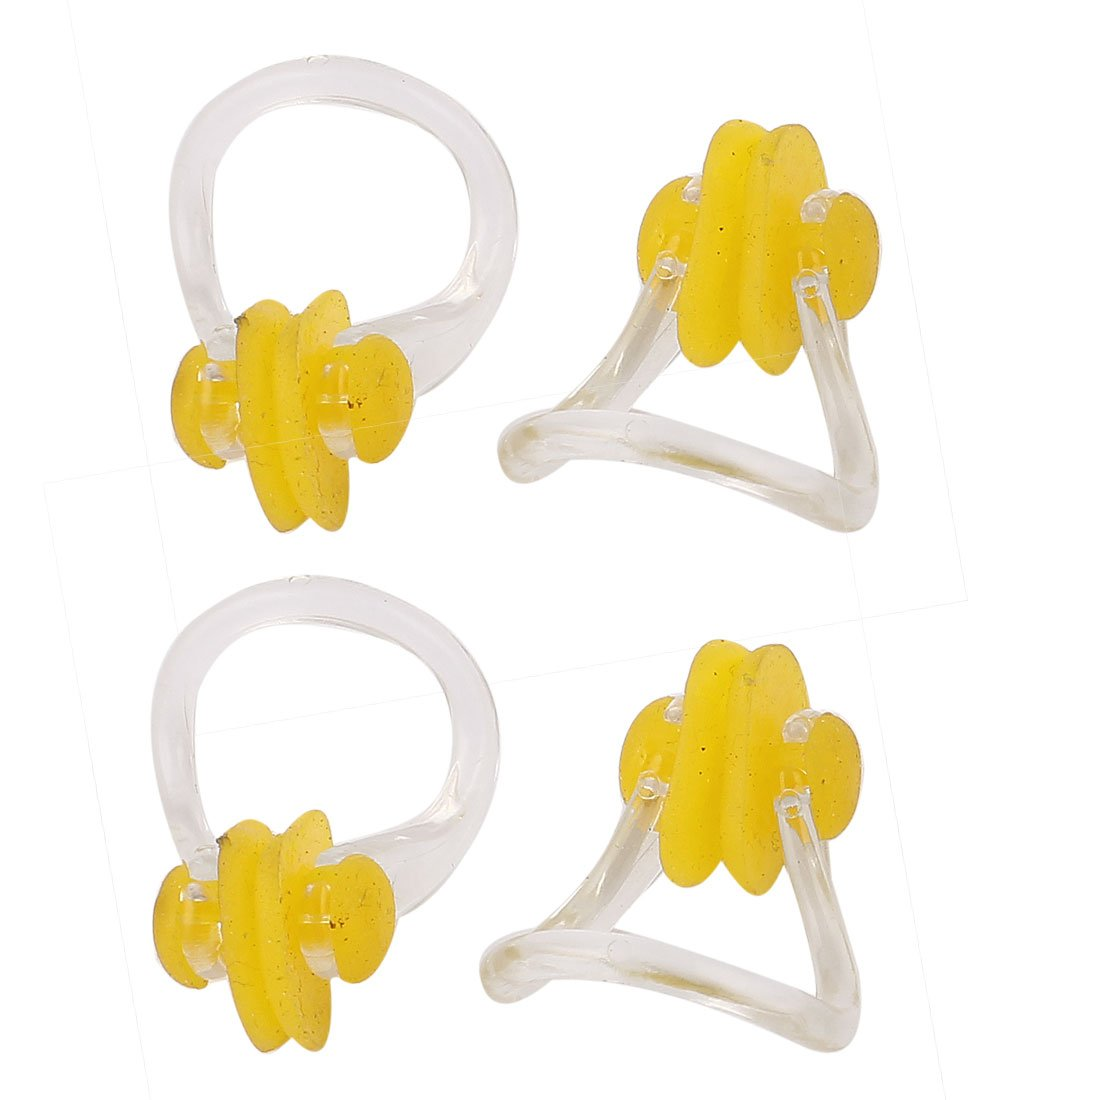 sourcingmap® Plastic Frame Swim Training Swimming Noseclip Nose Clip 4pcs Clear a15061000ux0271